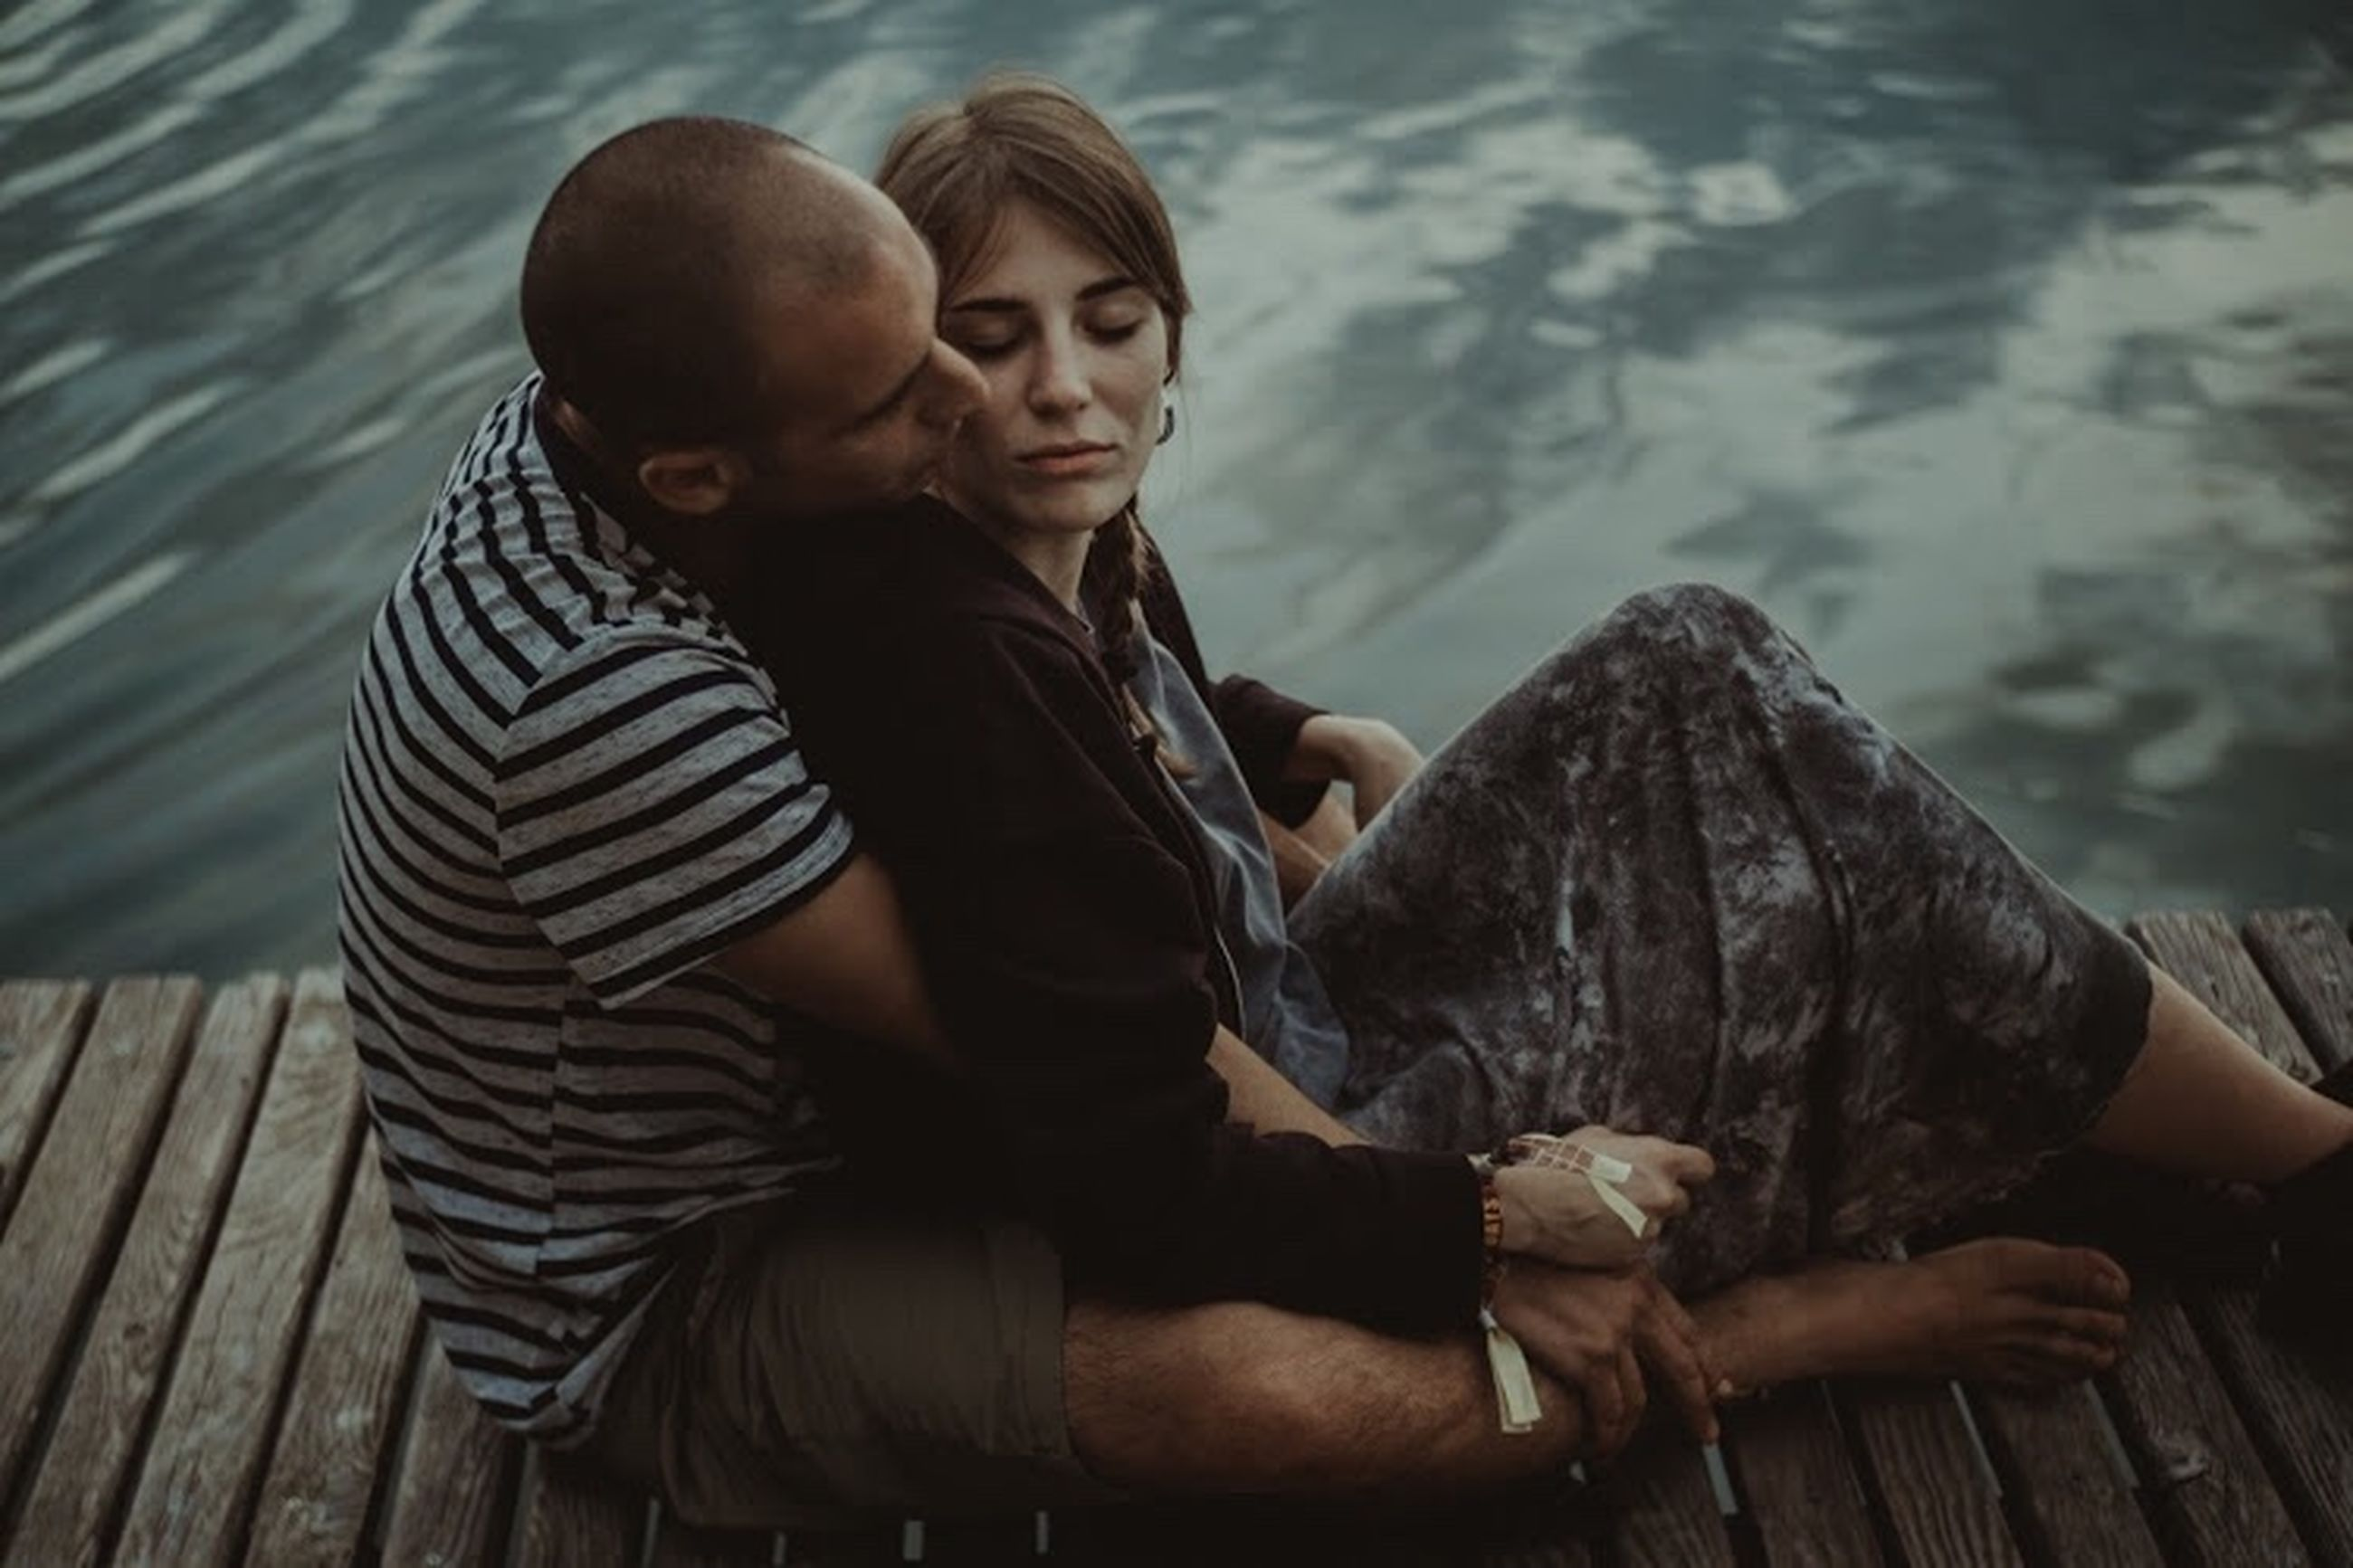 two people, water, togetherness, men, sitting, adult, animal wildlife, young adult, women, positive emotion, casual clothing, people, animals in the wild, mid adult, three quarter length, couple - relationship